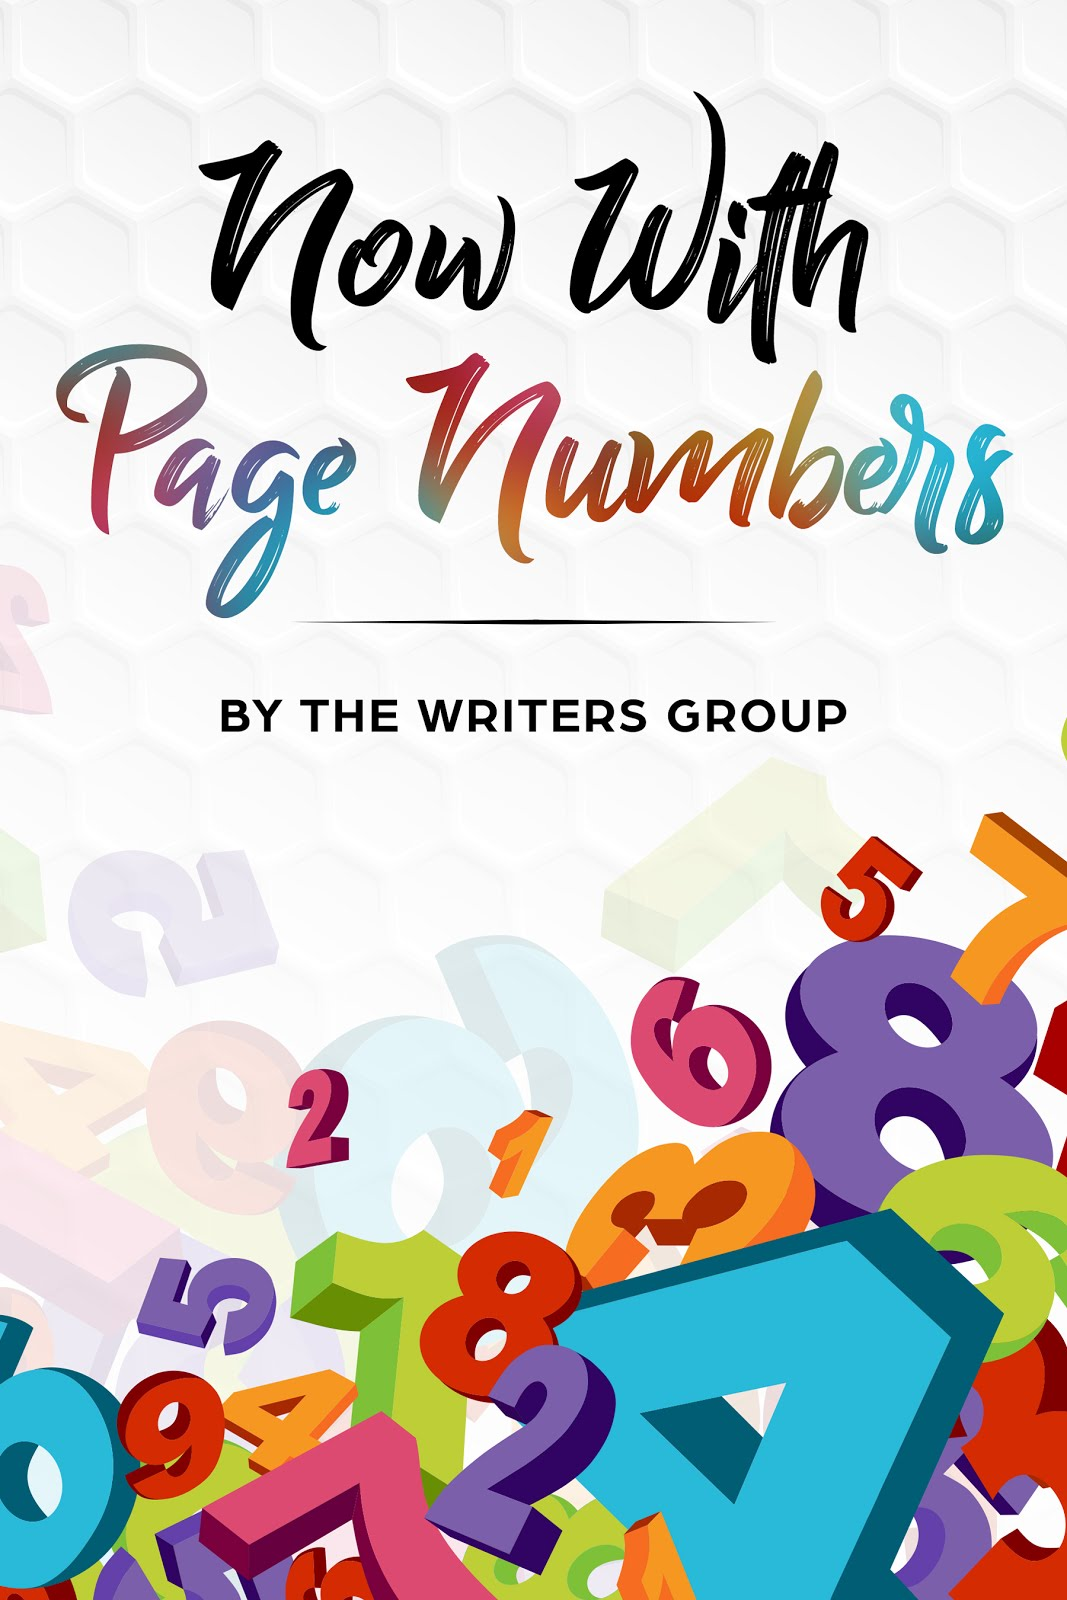 """Now With Page Numbers"" By The Writers Group"